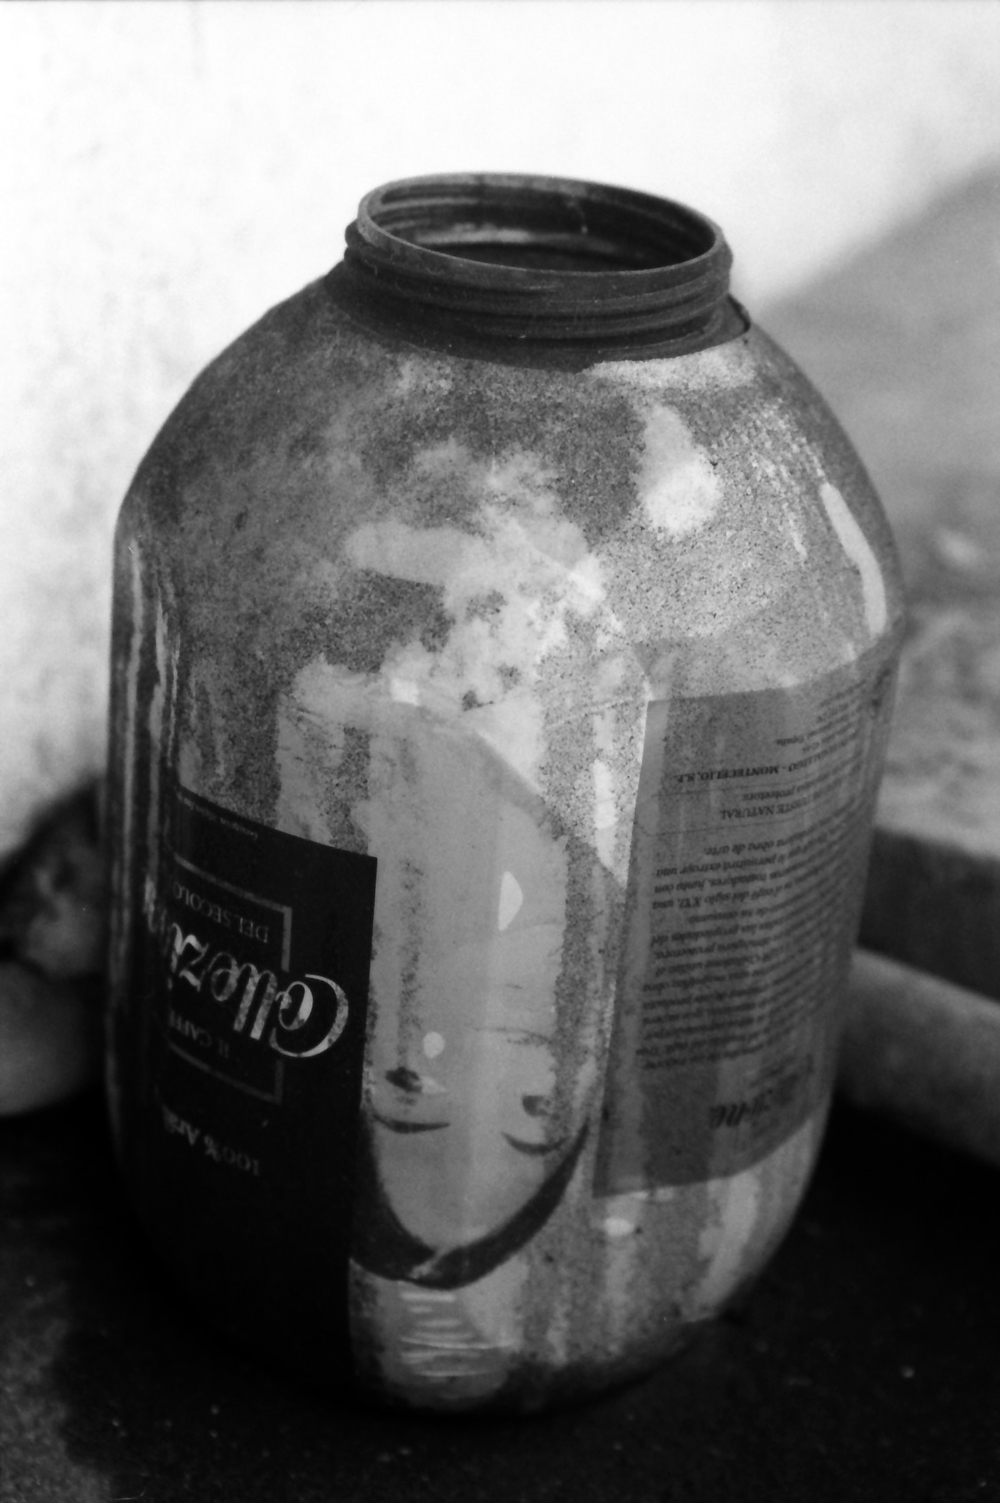 JAR, SILVER GELATIN PRINT ON ILFORD PAPER 2008